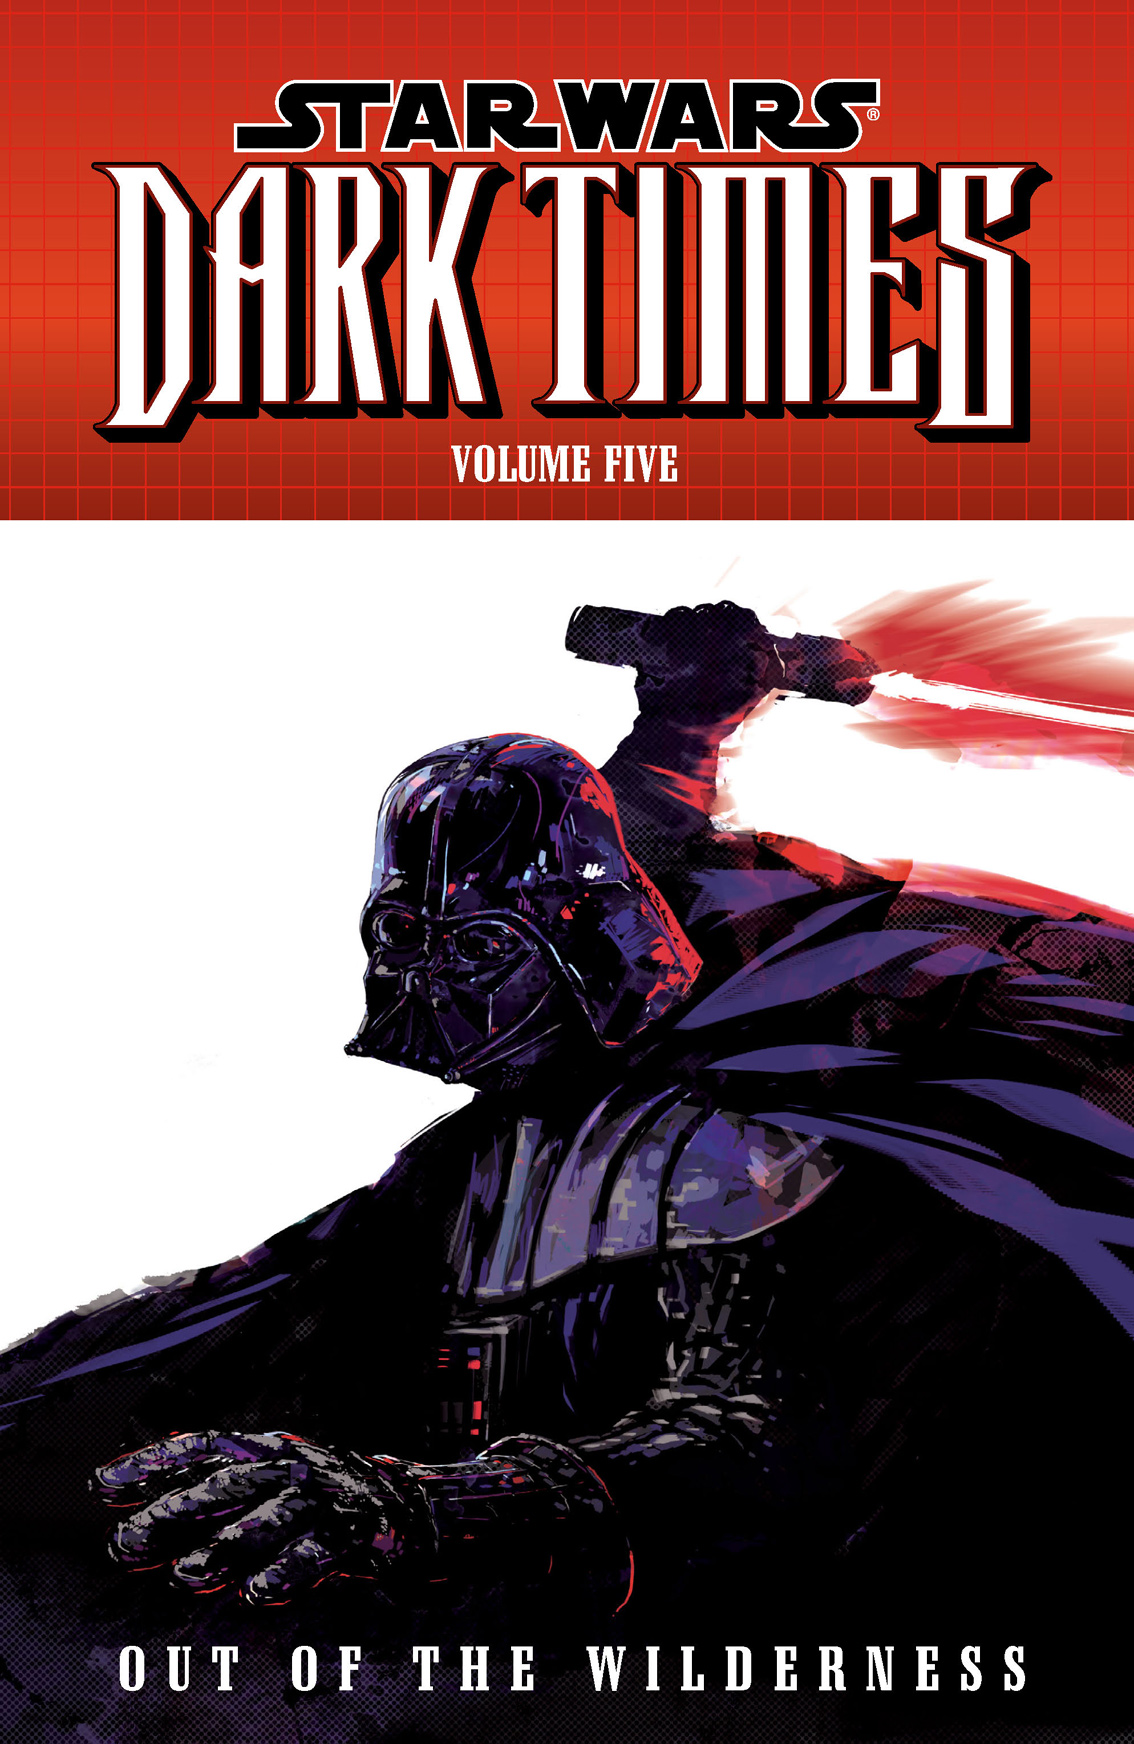 Star Wars: Dark Times Volume 5Out of the Wilderness